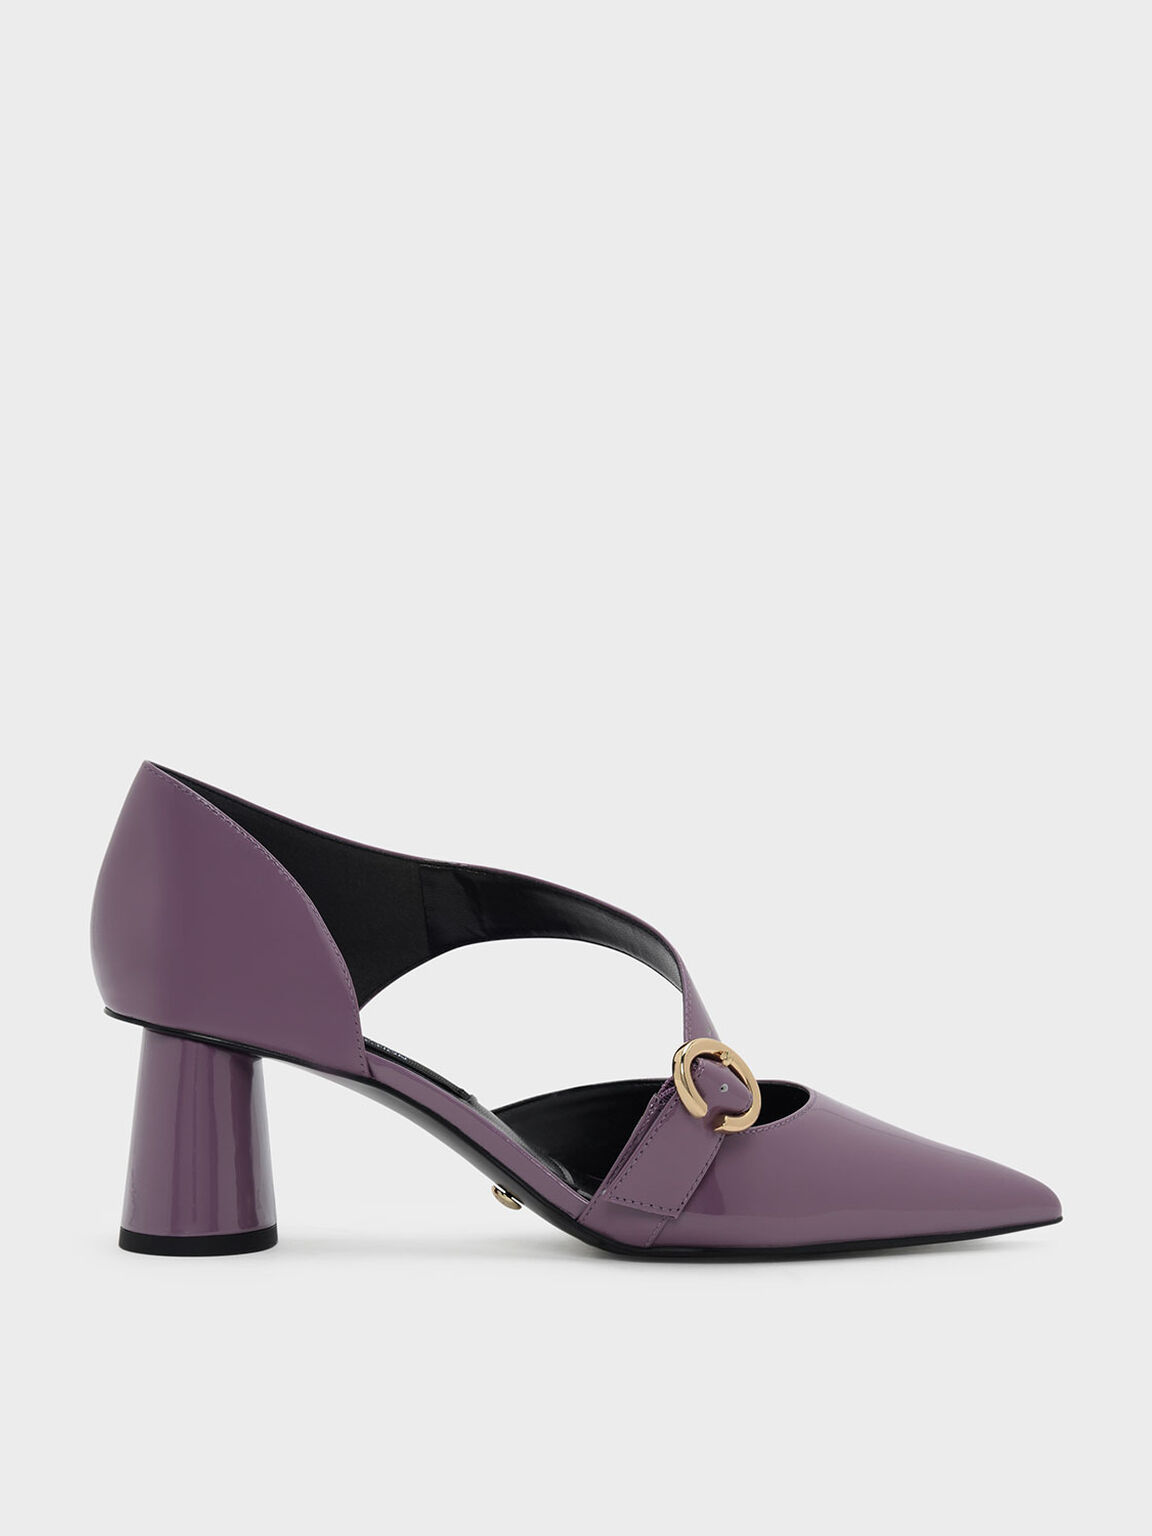 Asymmetrical Strap Leather Pumps, Mauve, hi-res